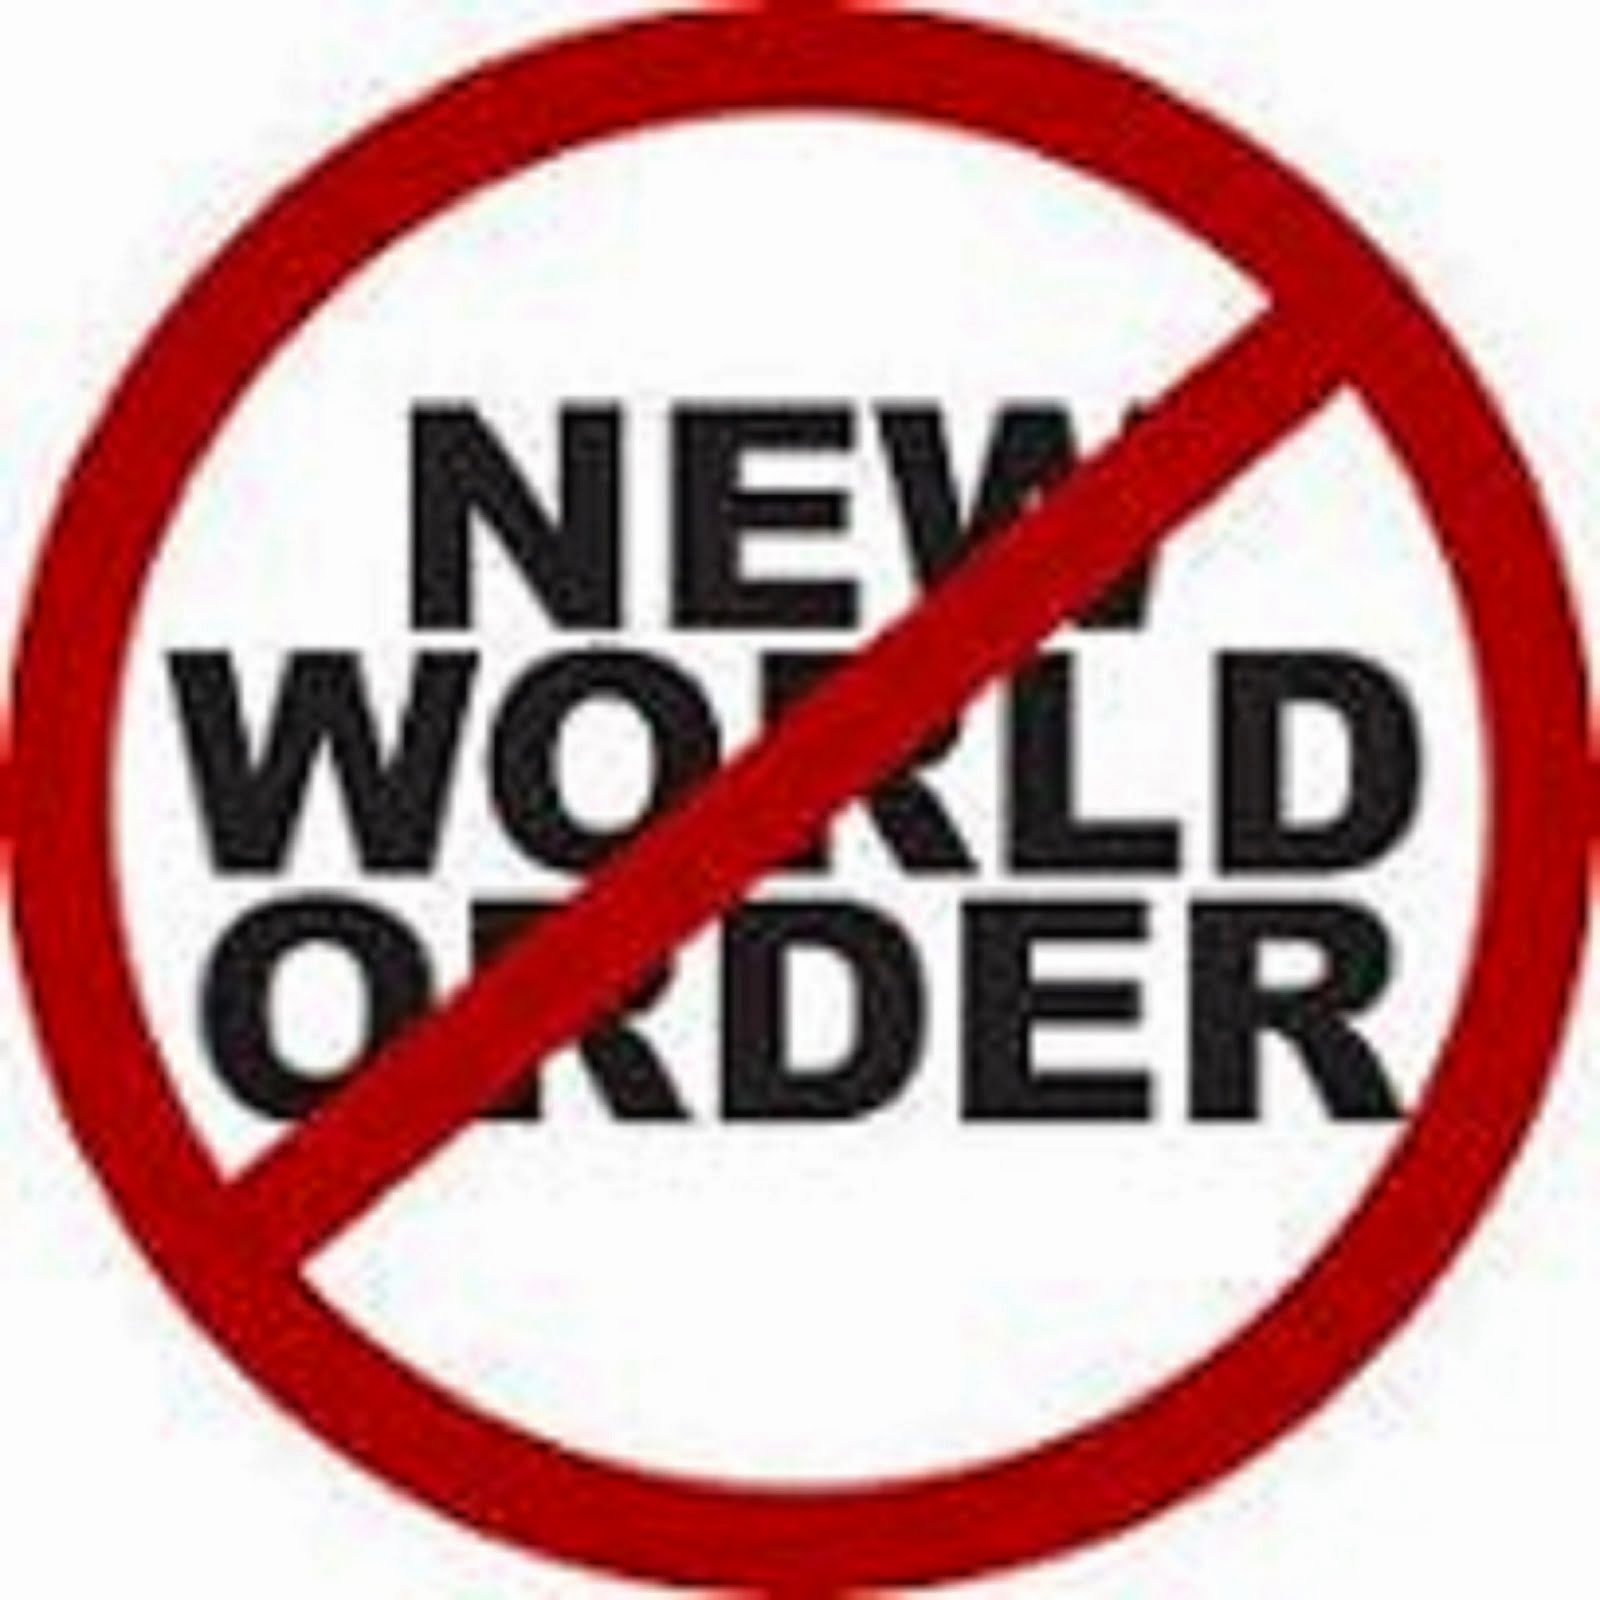 NO NEW WORLD ORDER